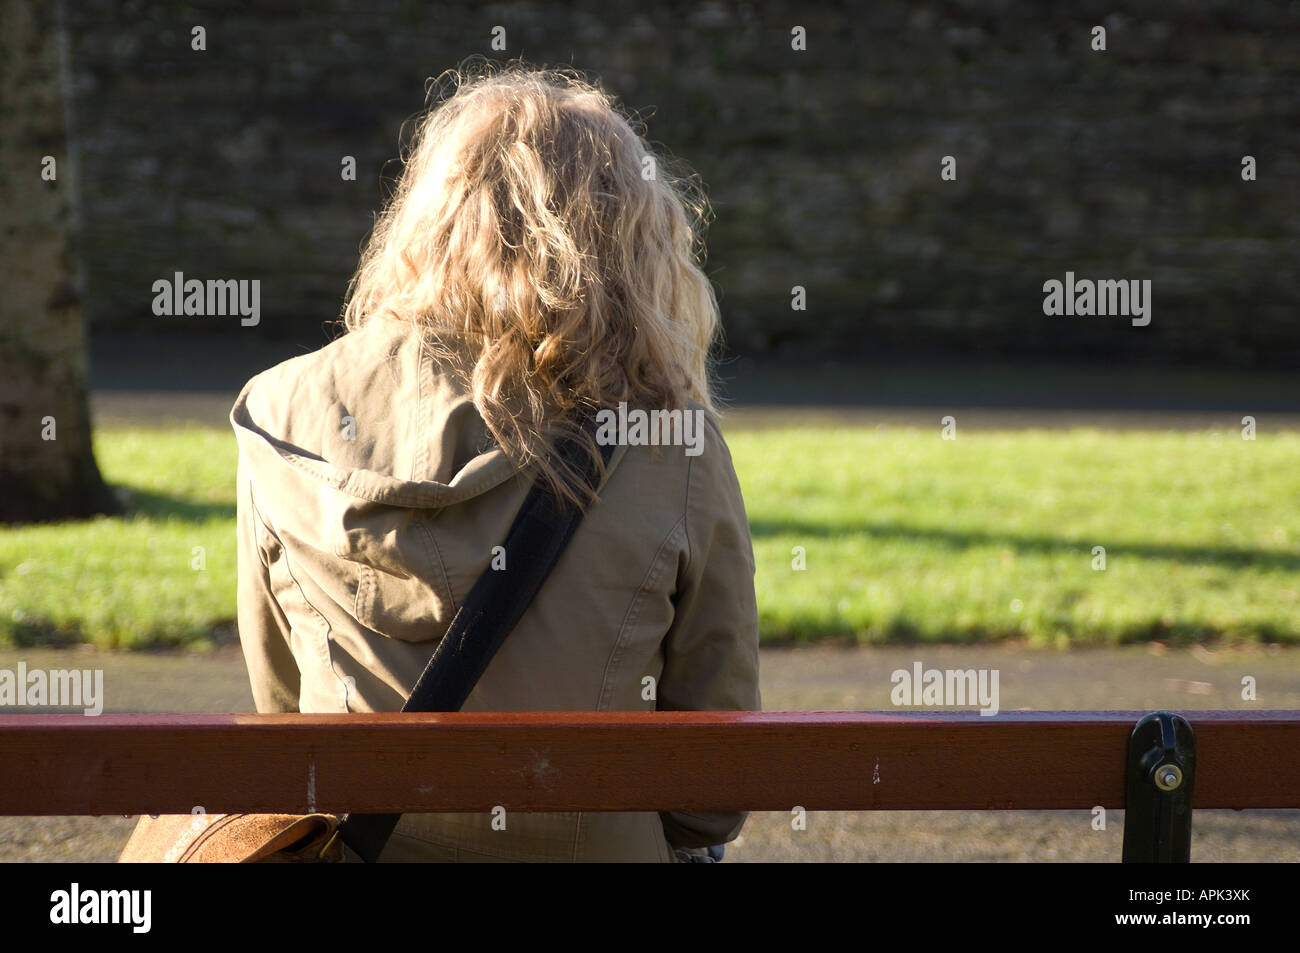 rear view young blonde woman sitting on park bench alone worried depressed anxious friendless abandoned by her boyfriend - Stock Image